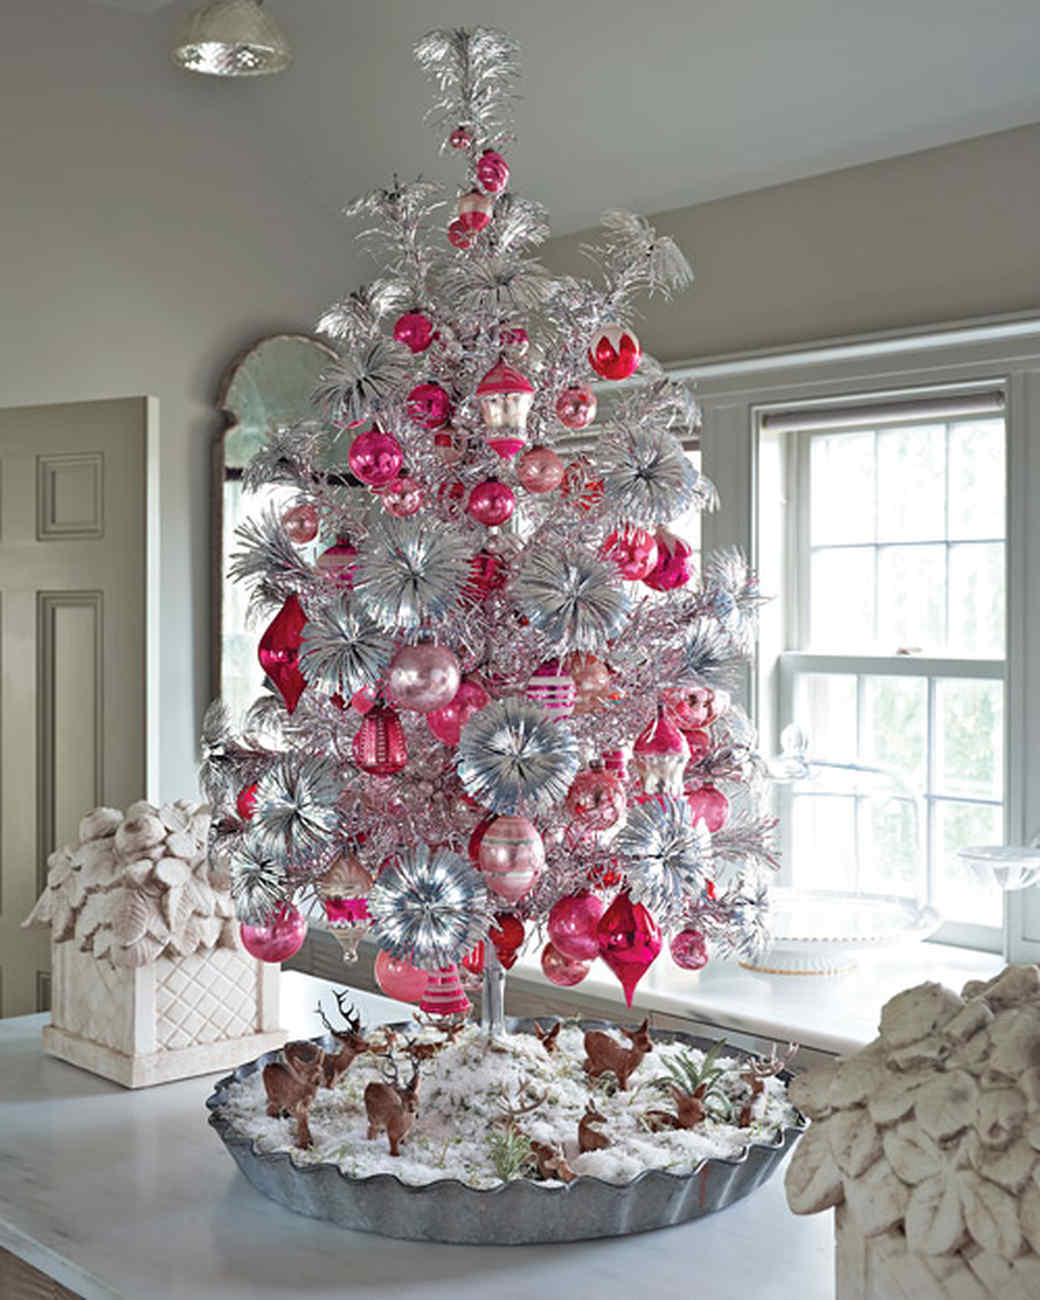 28 creative christmas tree decorating ideas martha stewart for 12 days of christmas decoration theme